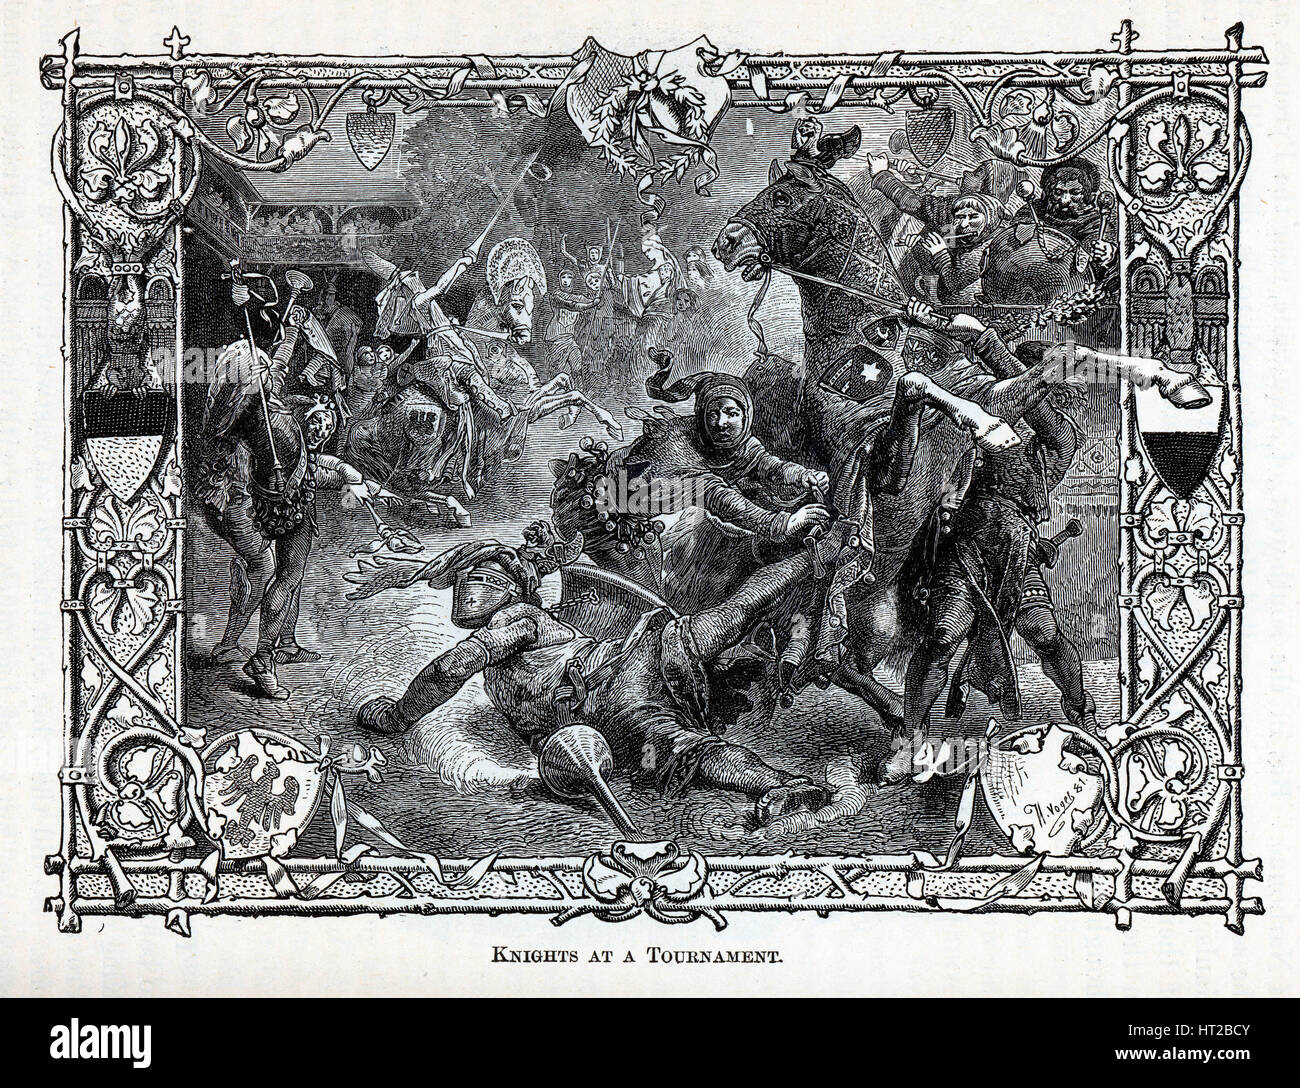 Knights at a Tournament, 1881. Artist: Vogel, Hermann (1854-1921) - Stock Image